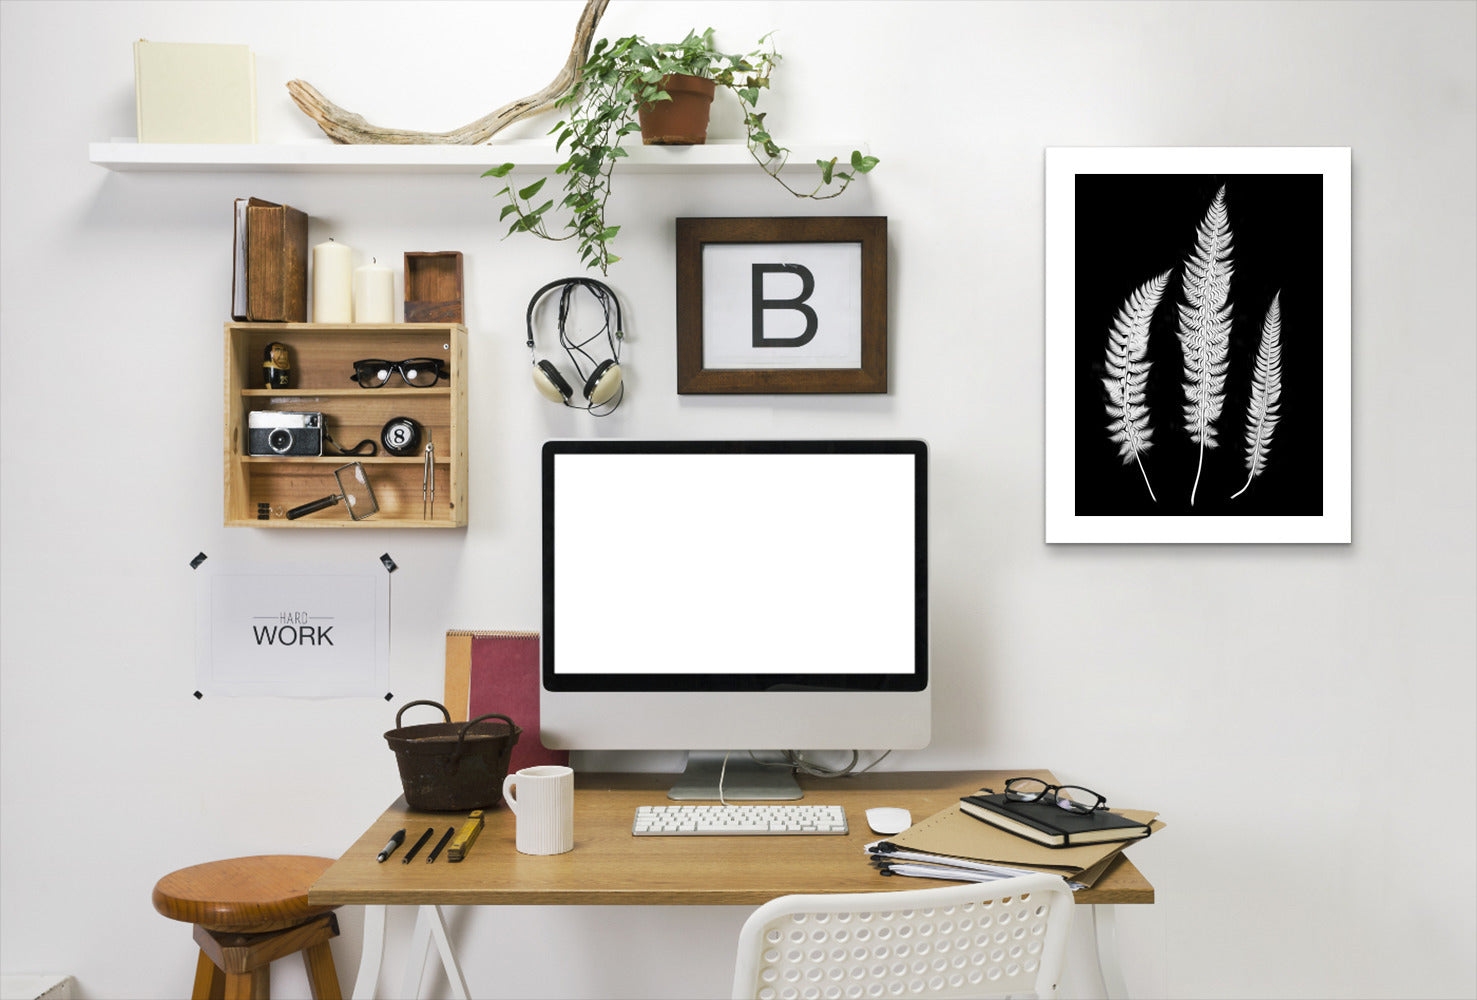 Swirl Ferns I By Chaos & Wonder Design - White Framed Print - Wall Art - Americanflat